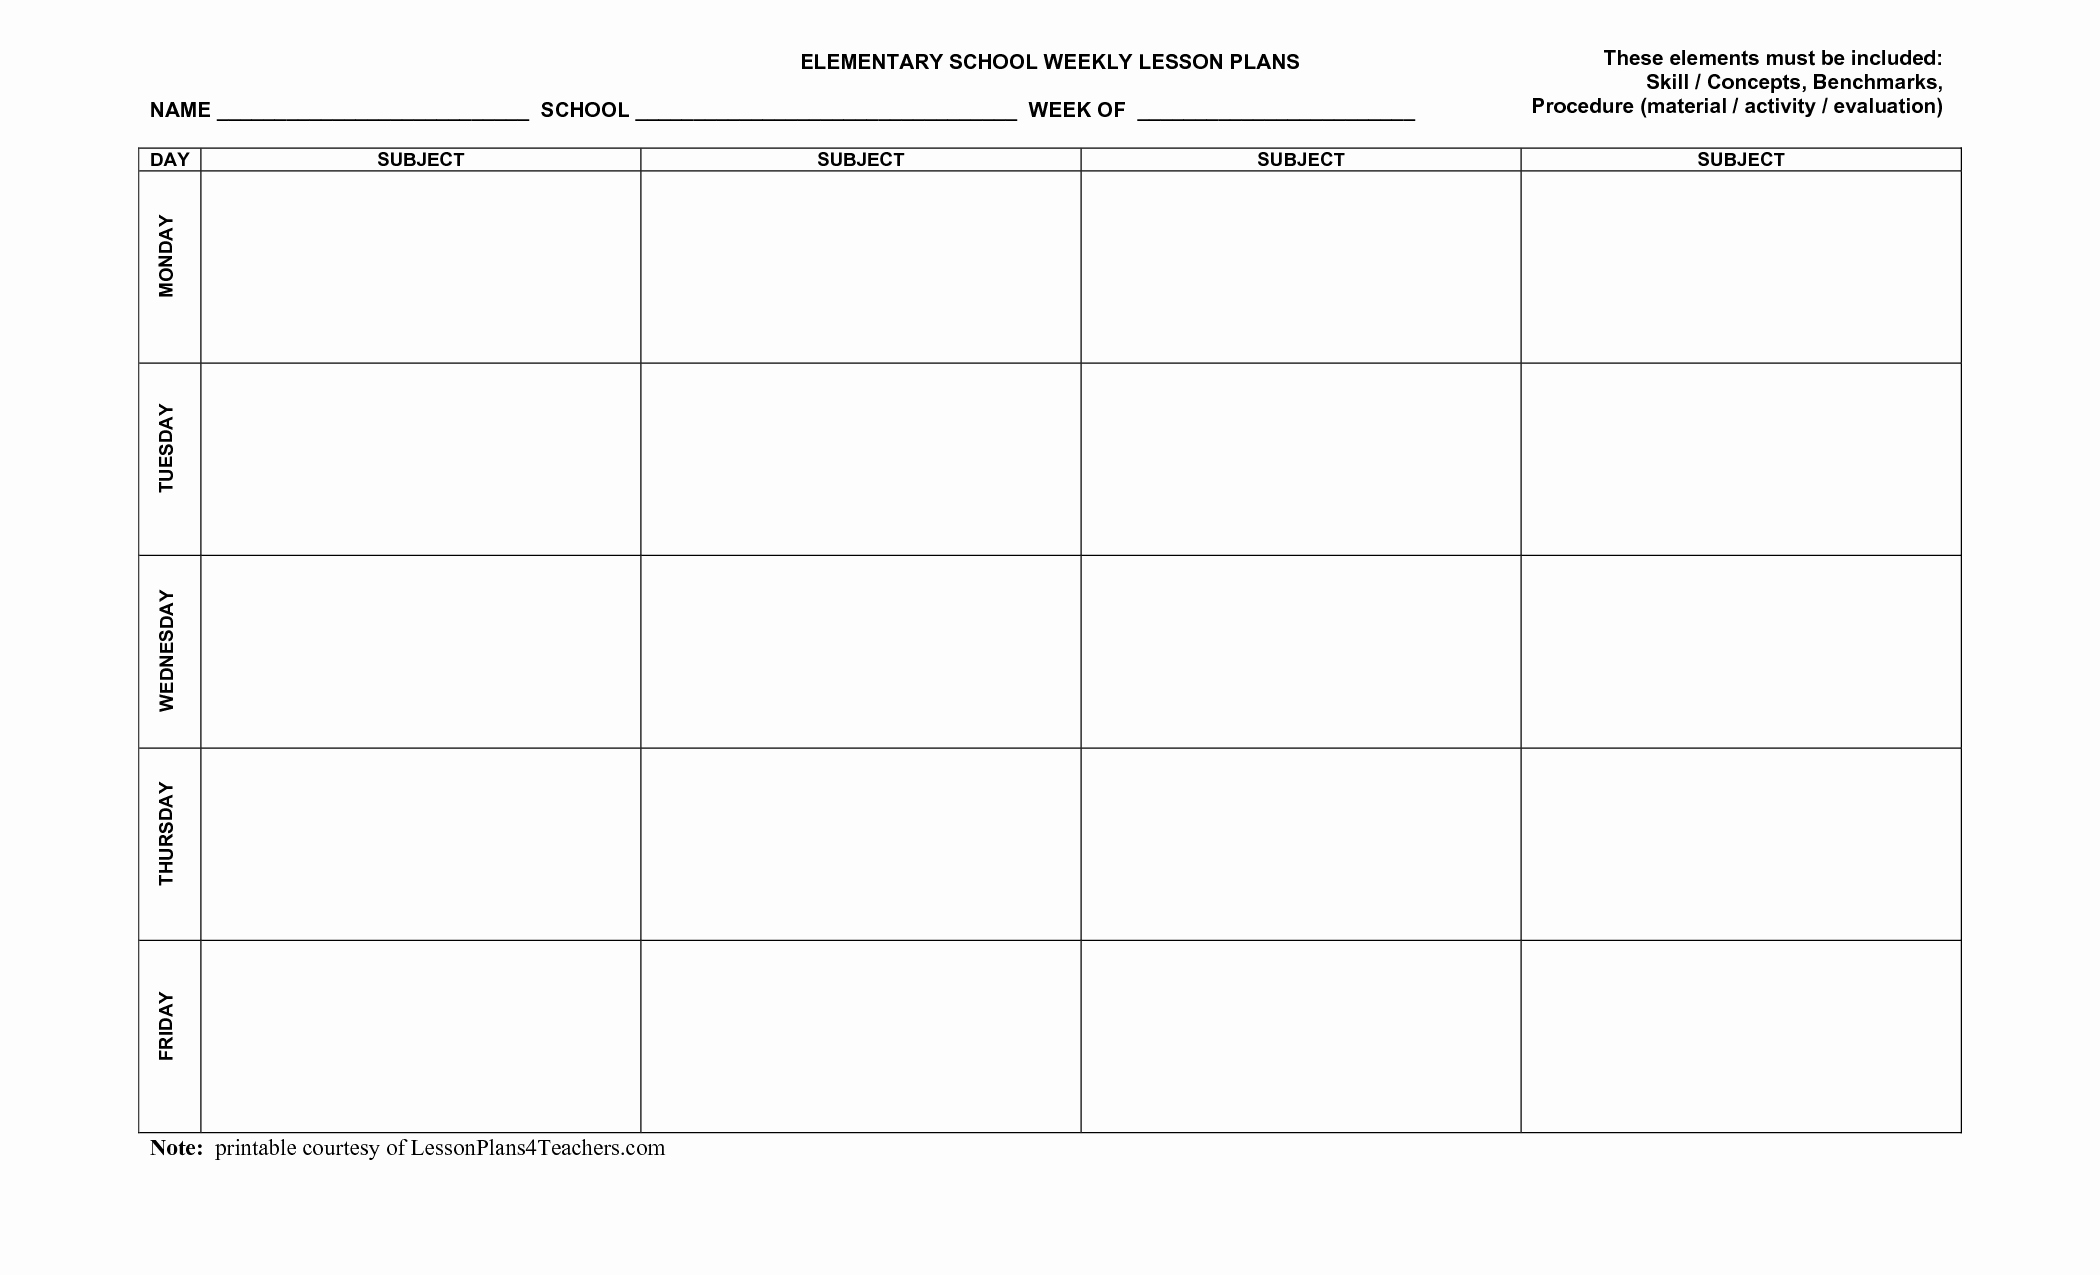 Free Lesson Plan Template Elementary Awesome Use This Blank 8 Part Lesson Plan Template Every Time that